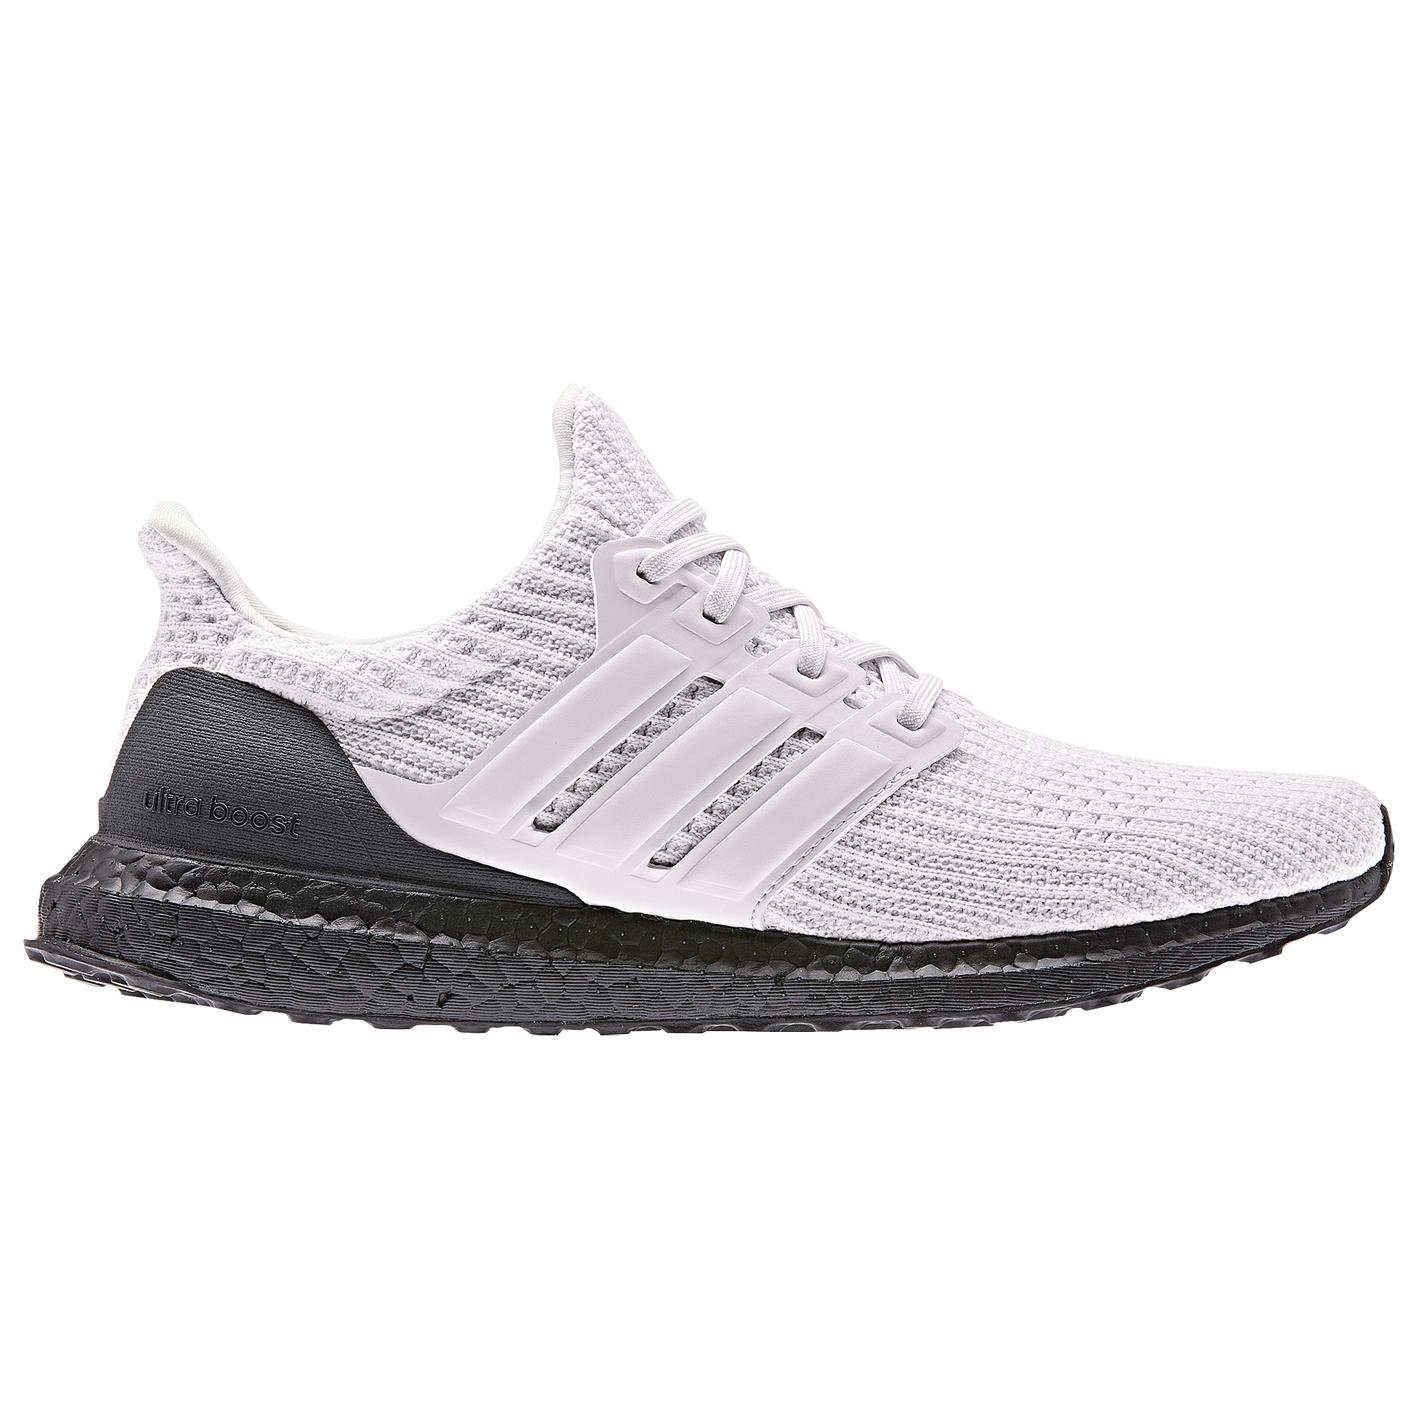 a56c8cd4b8b87 adidas Ultraboost - Men s - Running - Shoes - White Orchid Tint Black